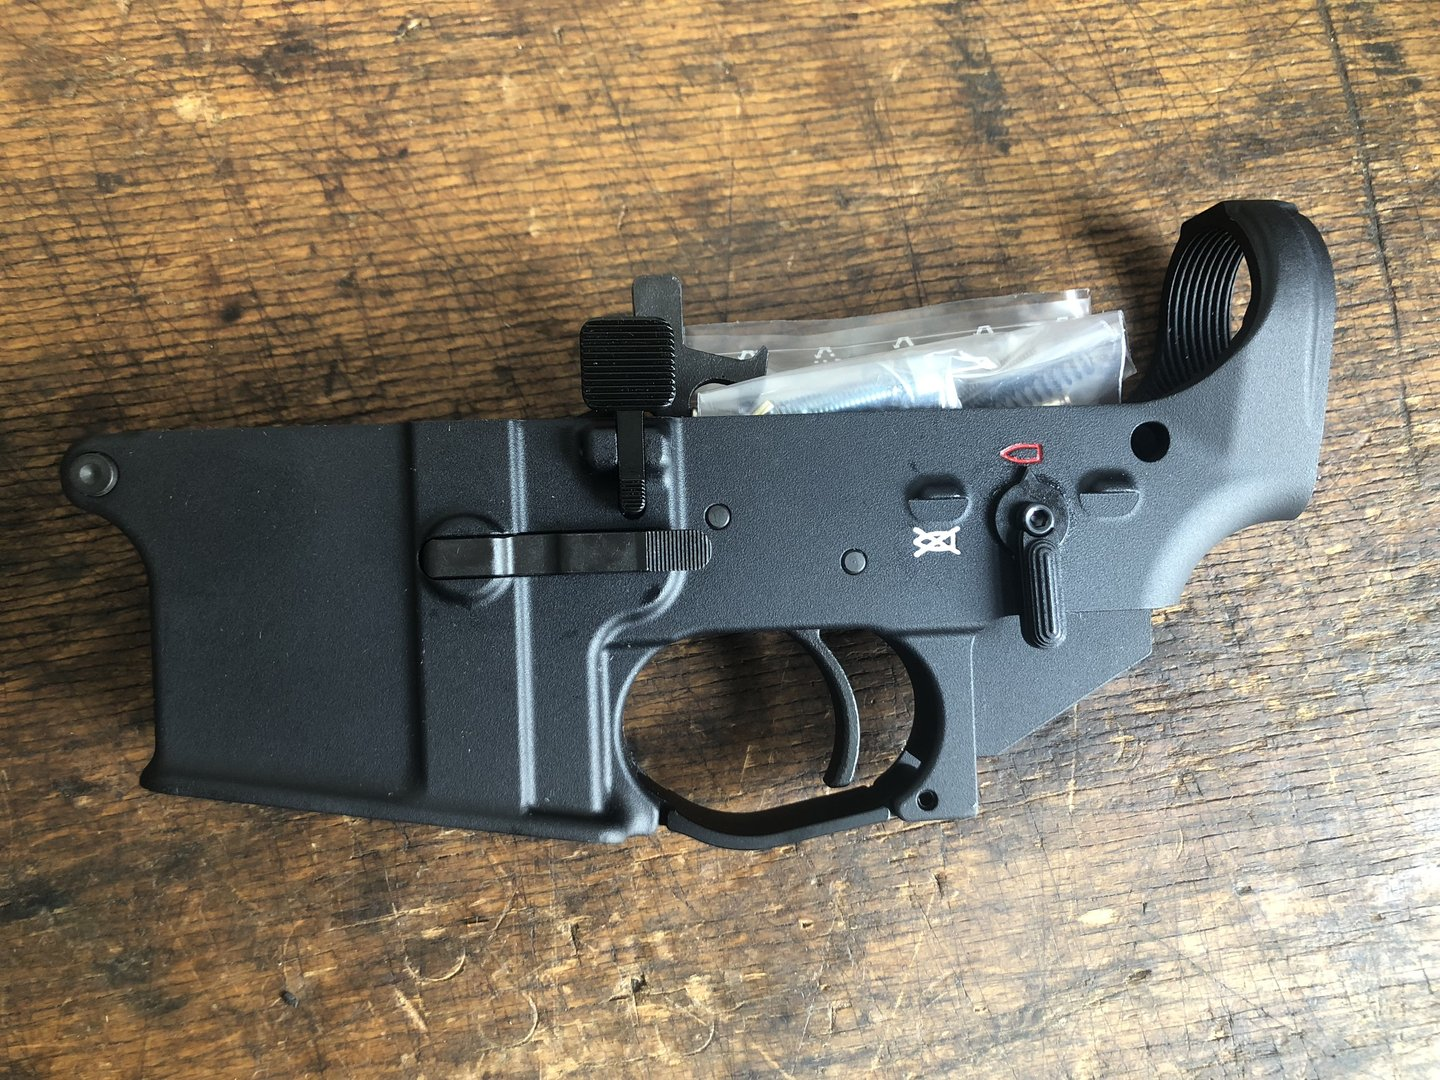 AR-15 lower complete with all parts, semi-auto, Schmeisser Germany made